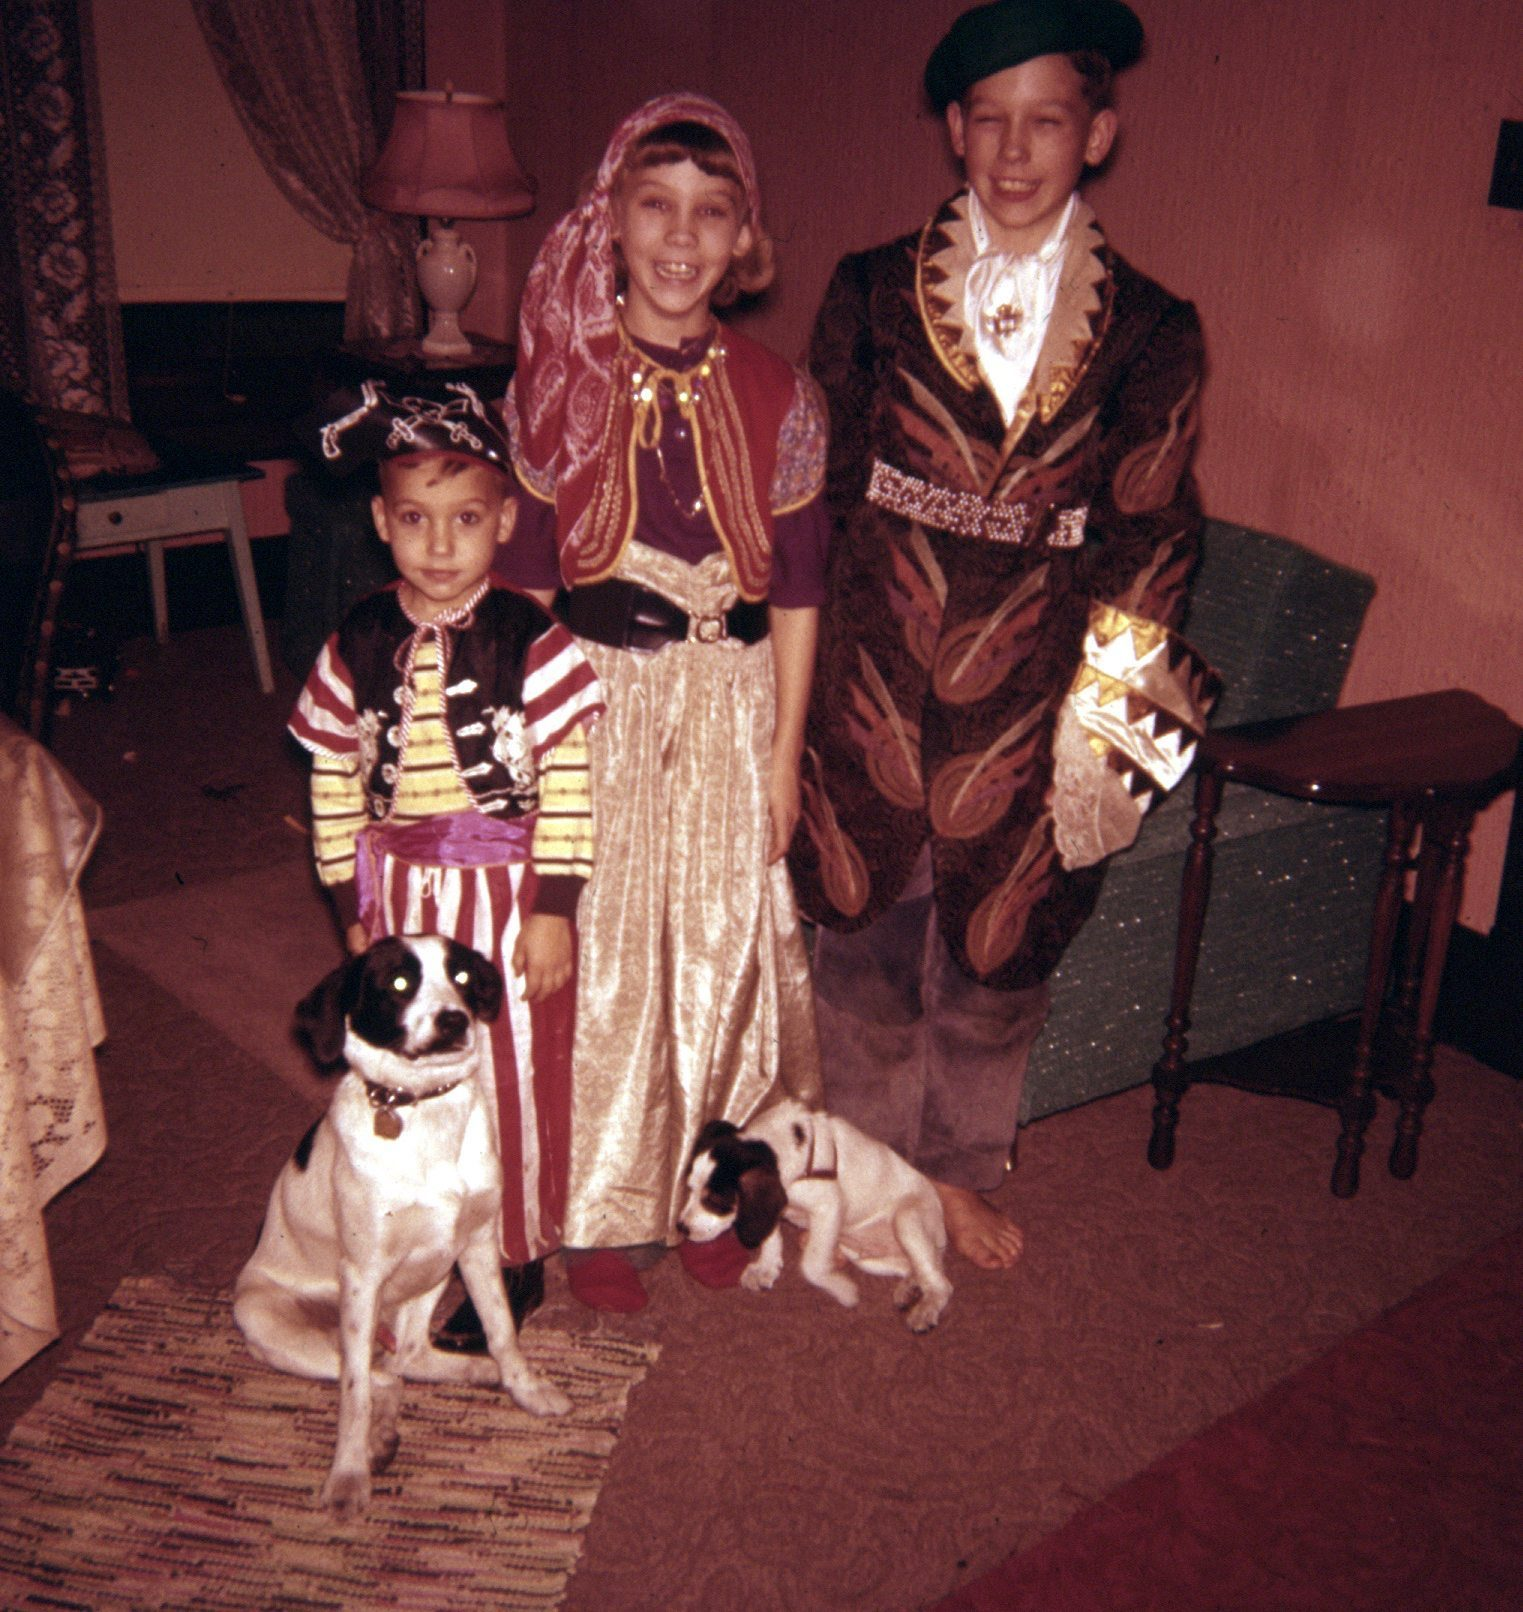 three siblings in 1958 pose in their self-created Halloween costumes in 1958. A 5 year-old boy is dressed in a pirate's hat, sash and striped pants; the girl, Linda, is dressed in the image of a gypsy, with bandana, flowing skirt, sash at waist, colorful vest; the oldest boy, 12, is dressed in a buccaneer's hat, an oversized brocaded jacket, shimmery shirt with lace cuffs; two spotted dogs, father & son, named Buttons and Bows, are at their feet; Bows is a puppy, about 8 weeks old.